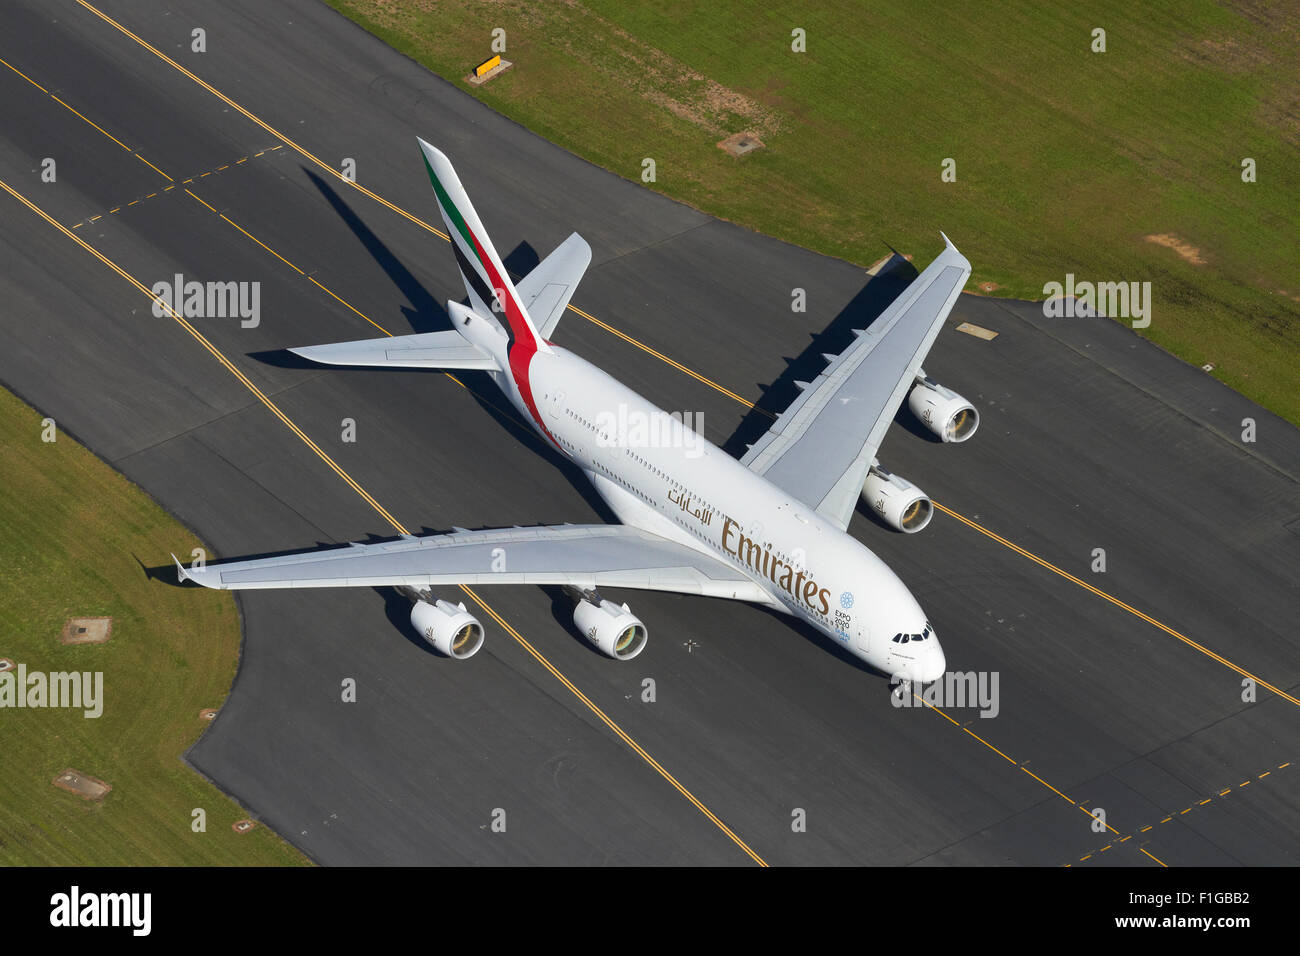 Emirates Airbus A380 at Auckland Airport, North Island, New Zealand - aerial - Stock Image